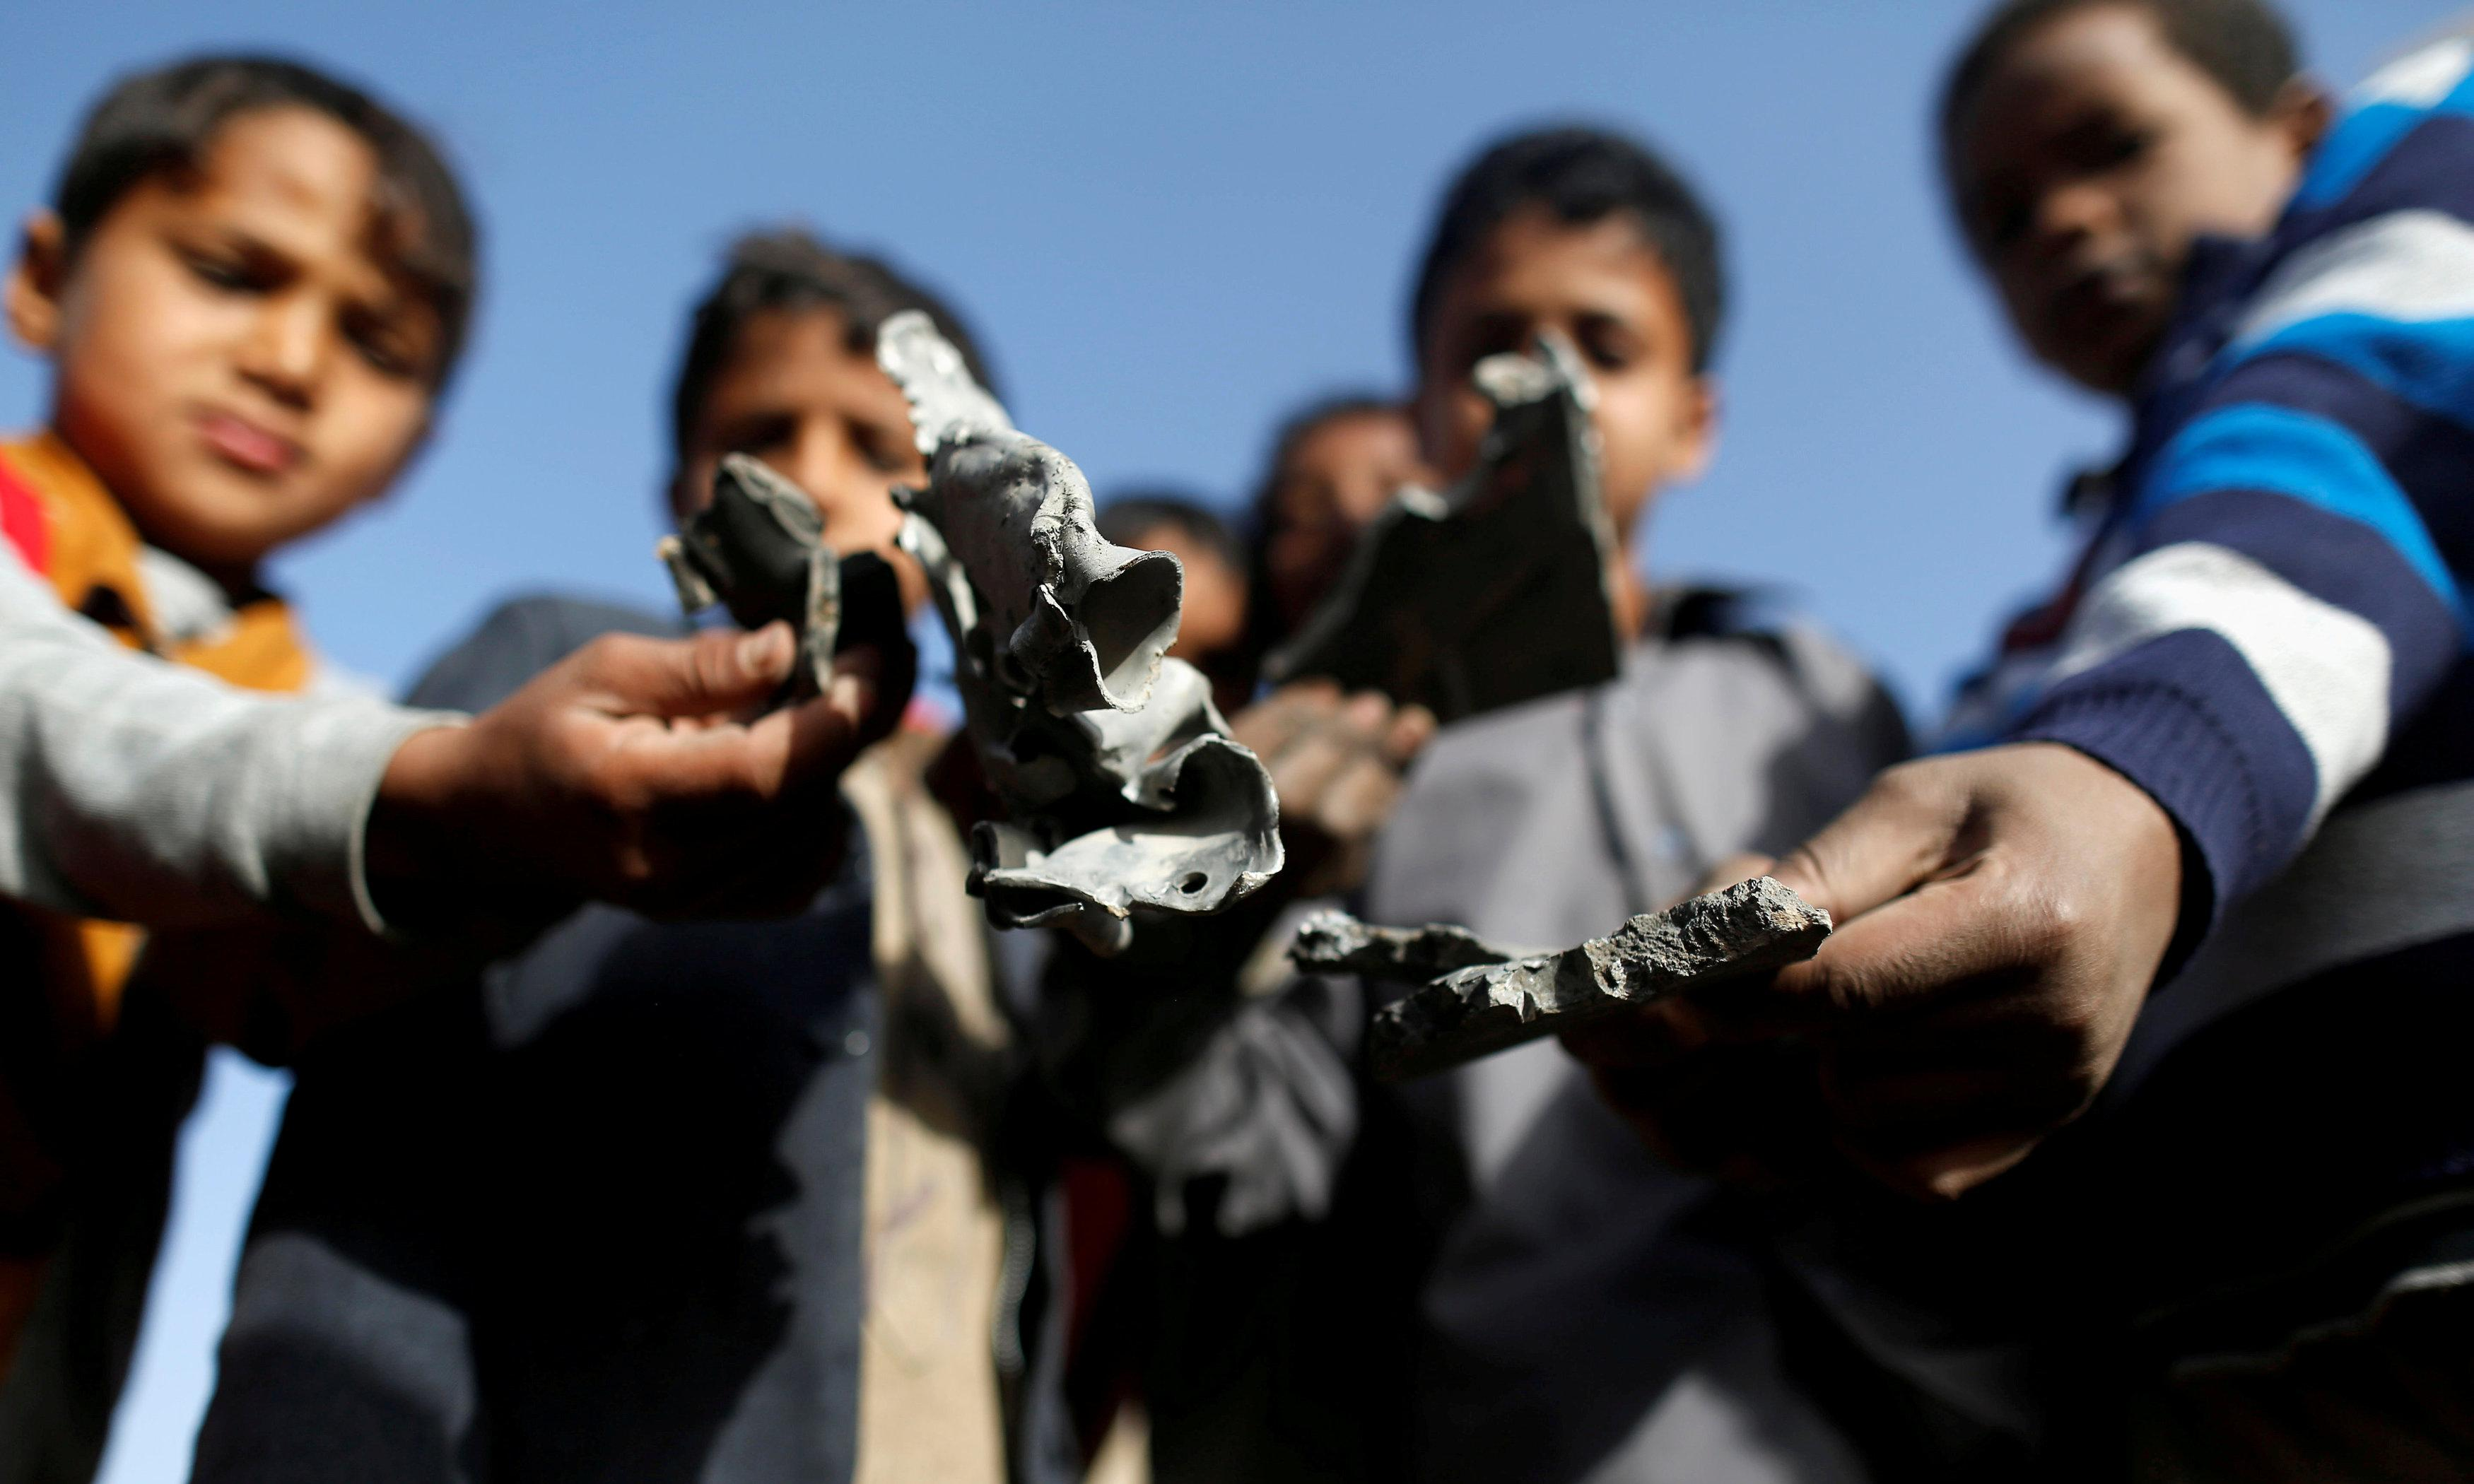 No guarantee Australian weapons aren't used in Yemen conflict, government says